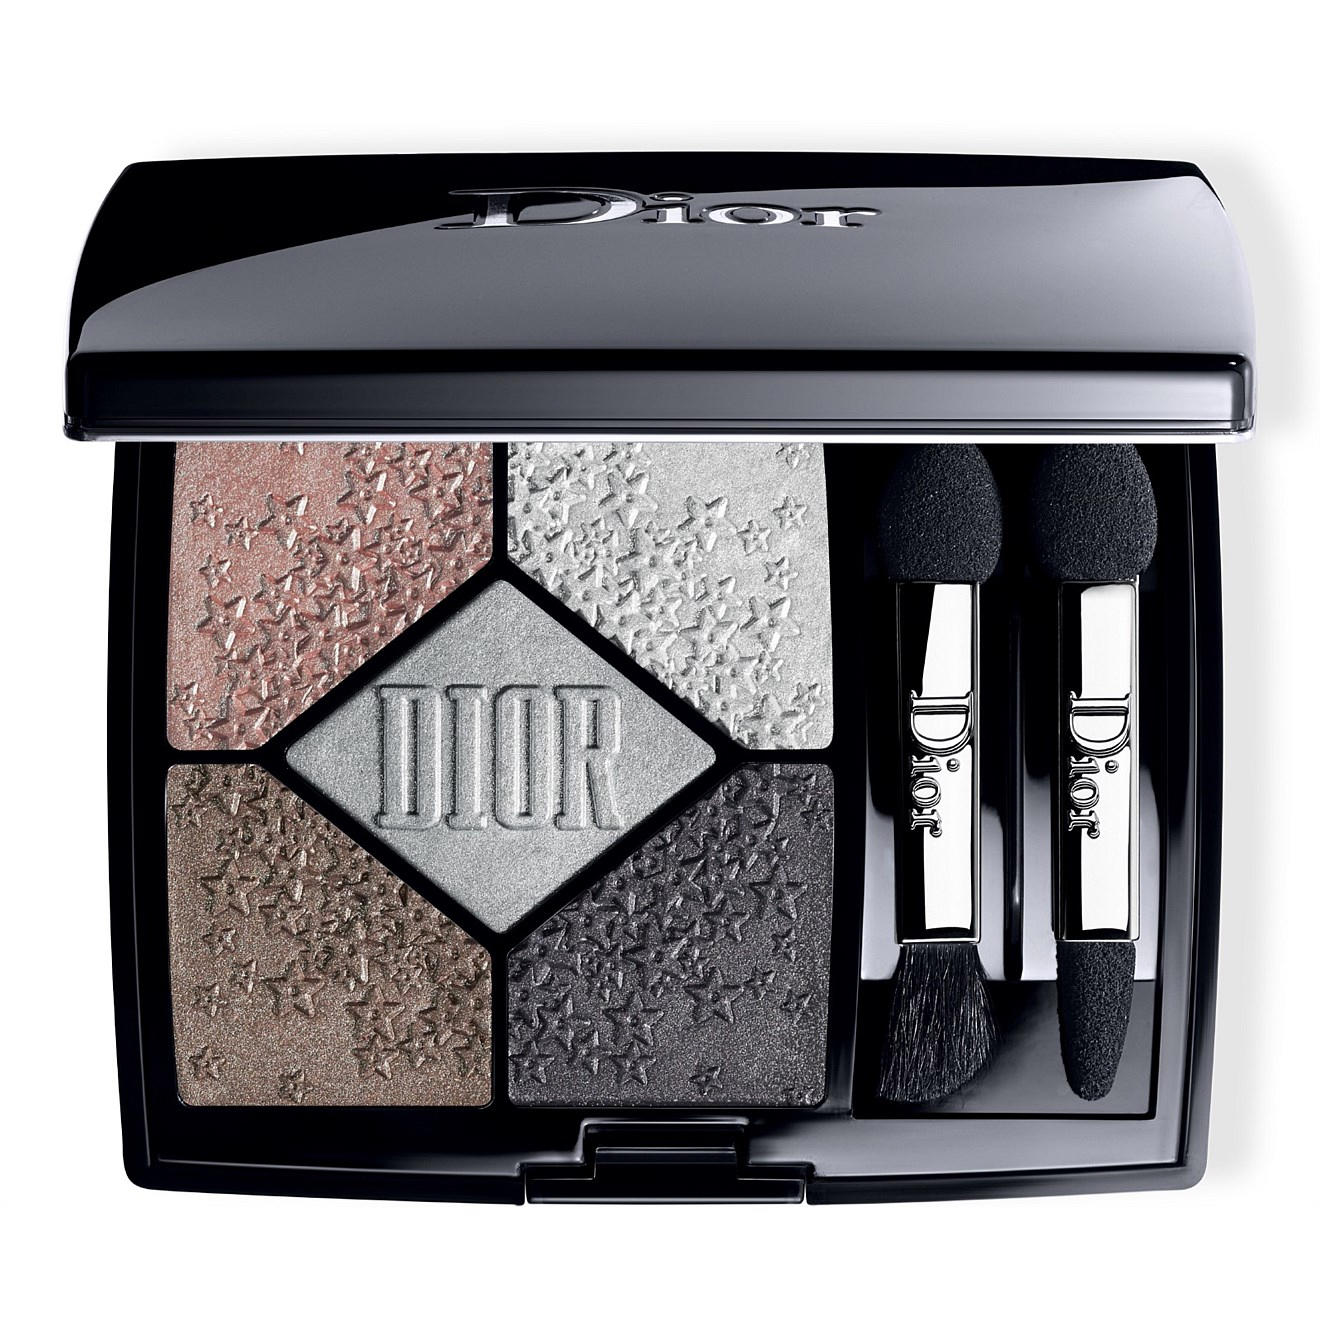 Dior 5 Couleurs Midnight Wish Eyeshadow Palette Moonlight 057